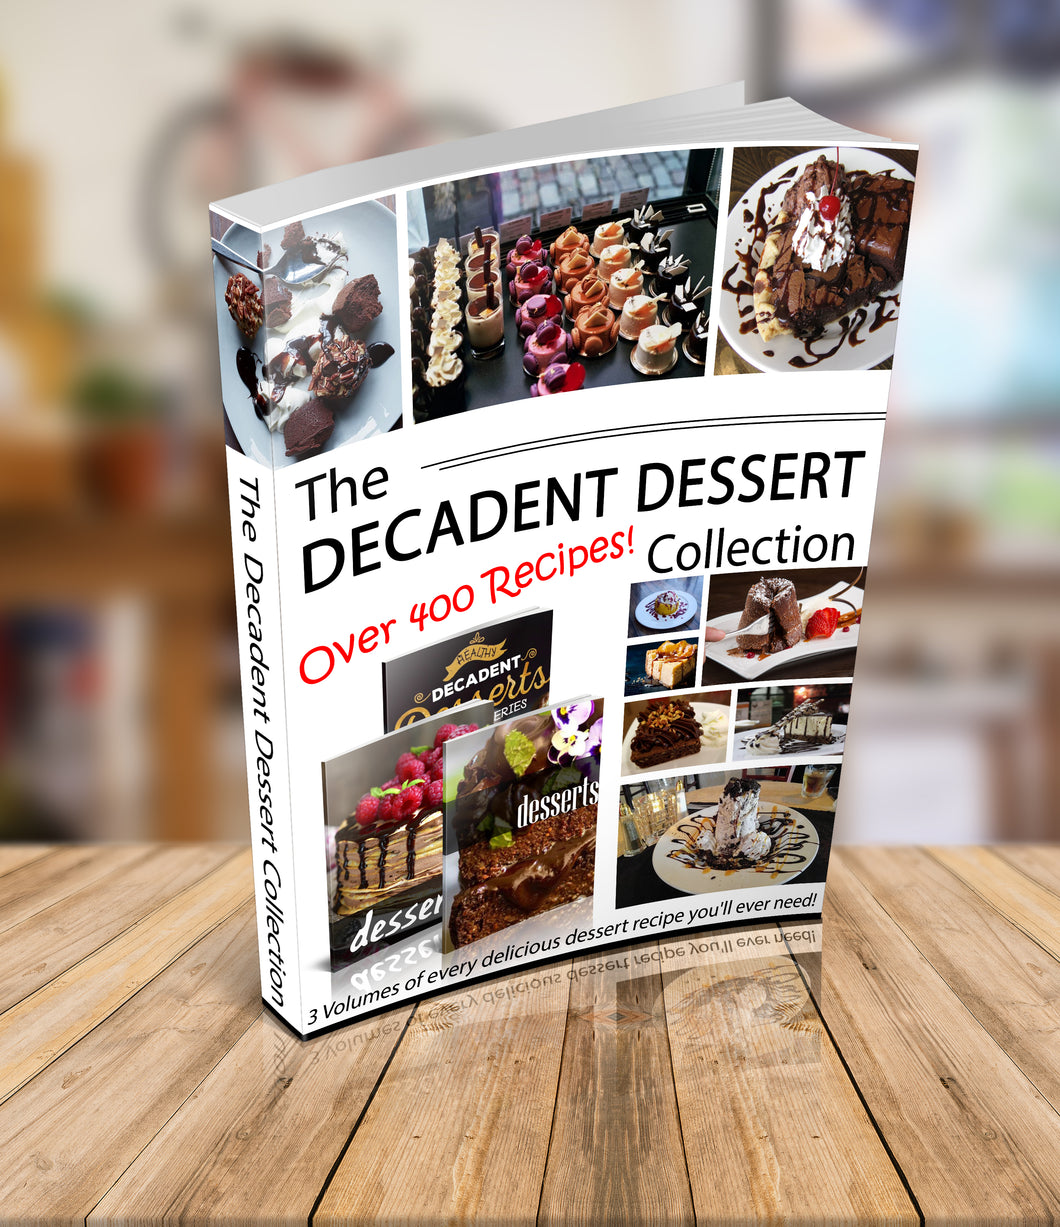 The Decadent Dessert Collection - 3 Volume eBook - Over 400 Recipes!